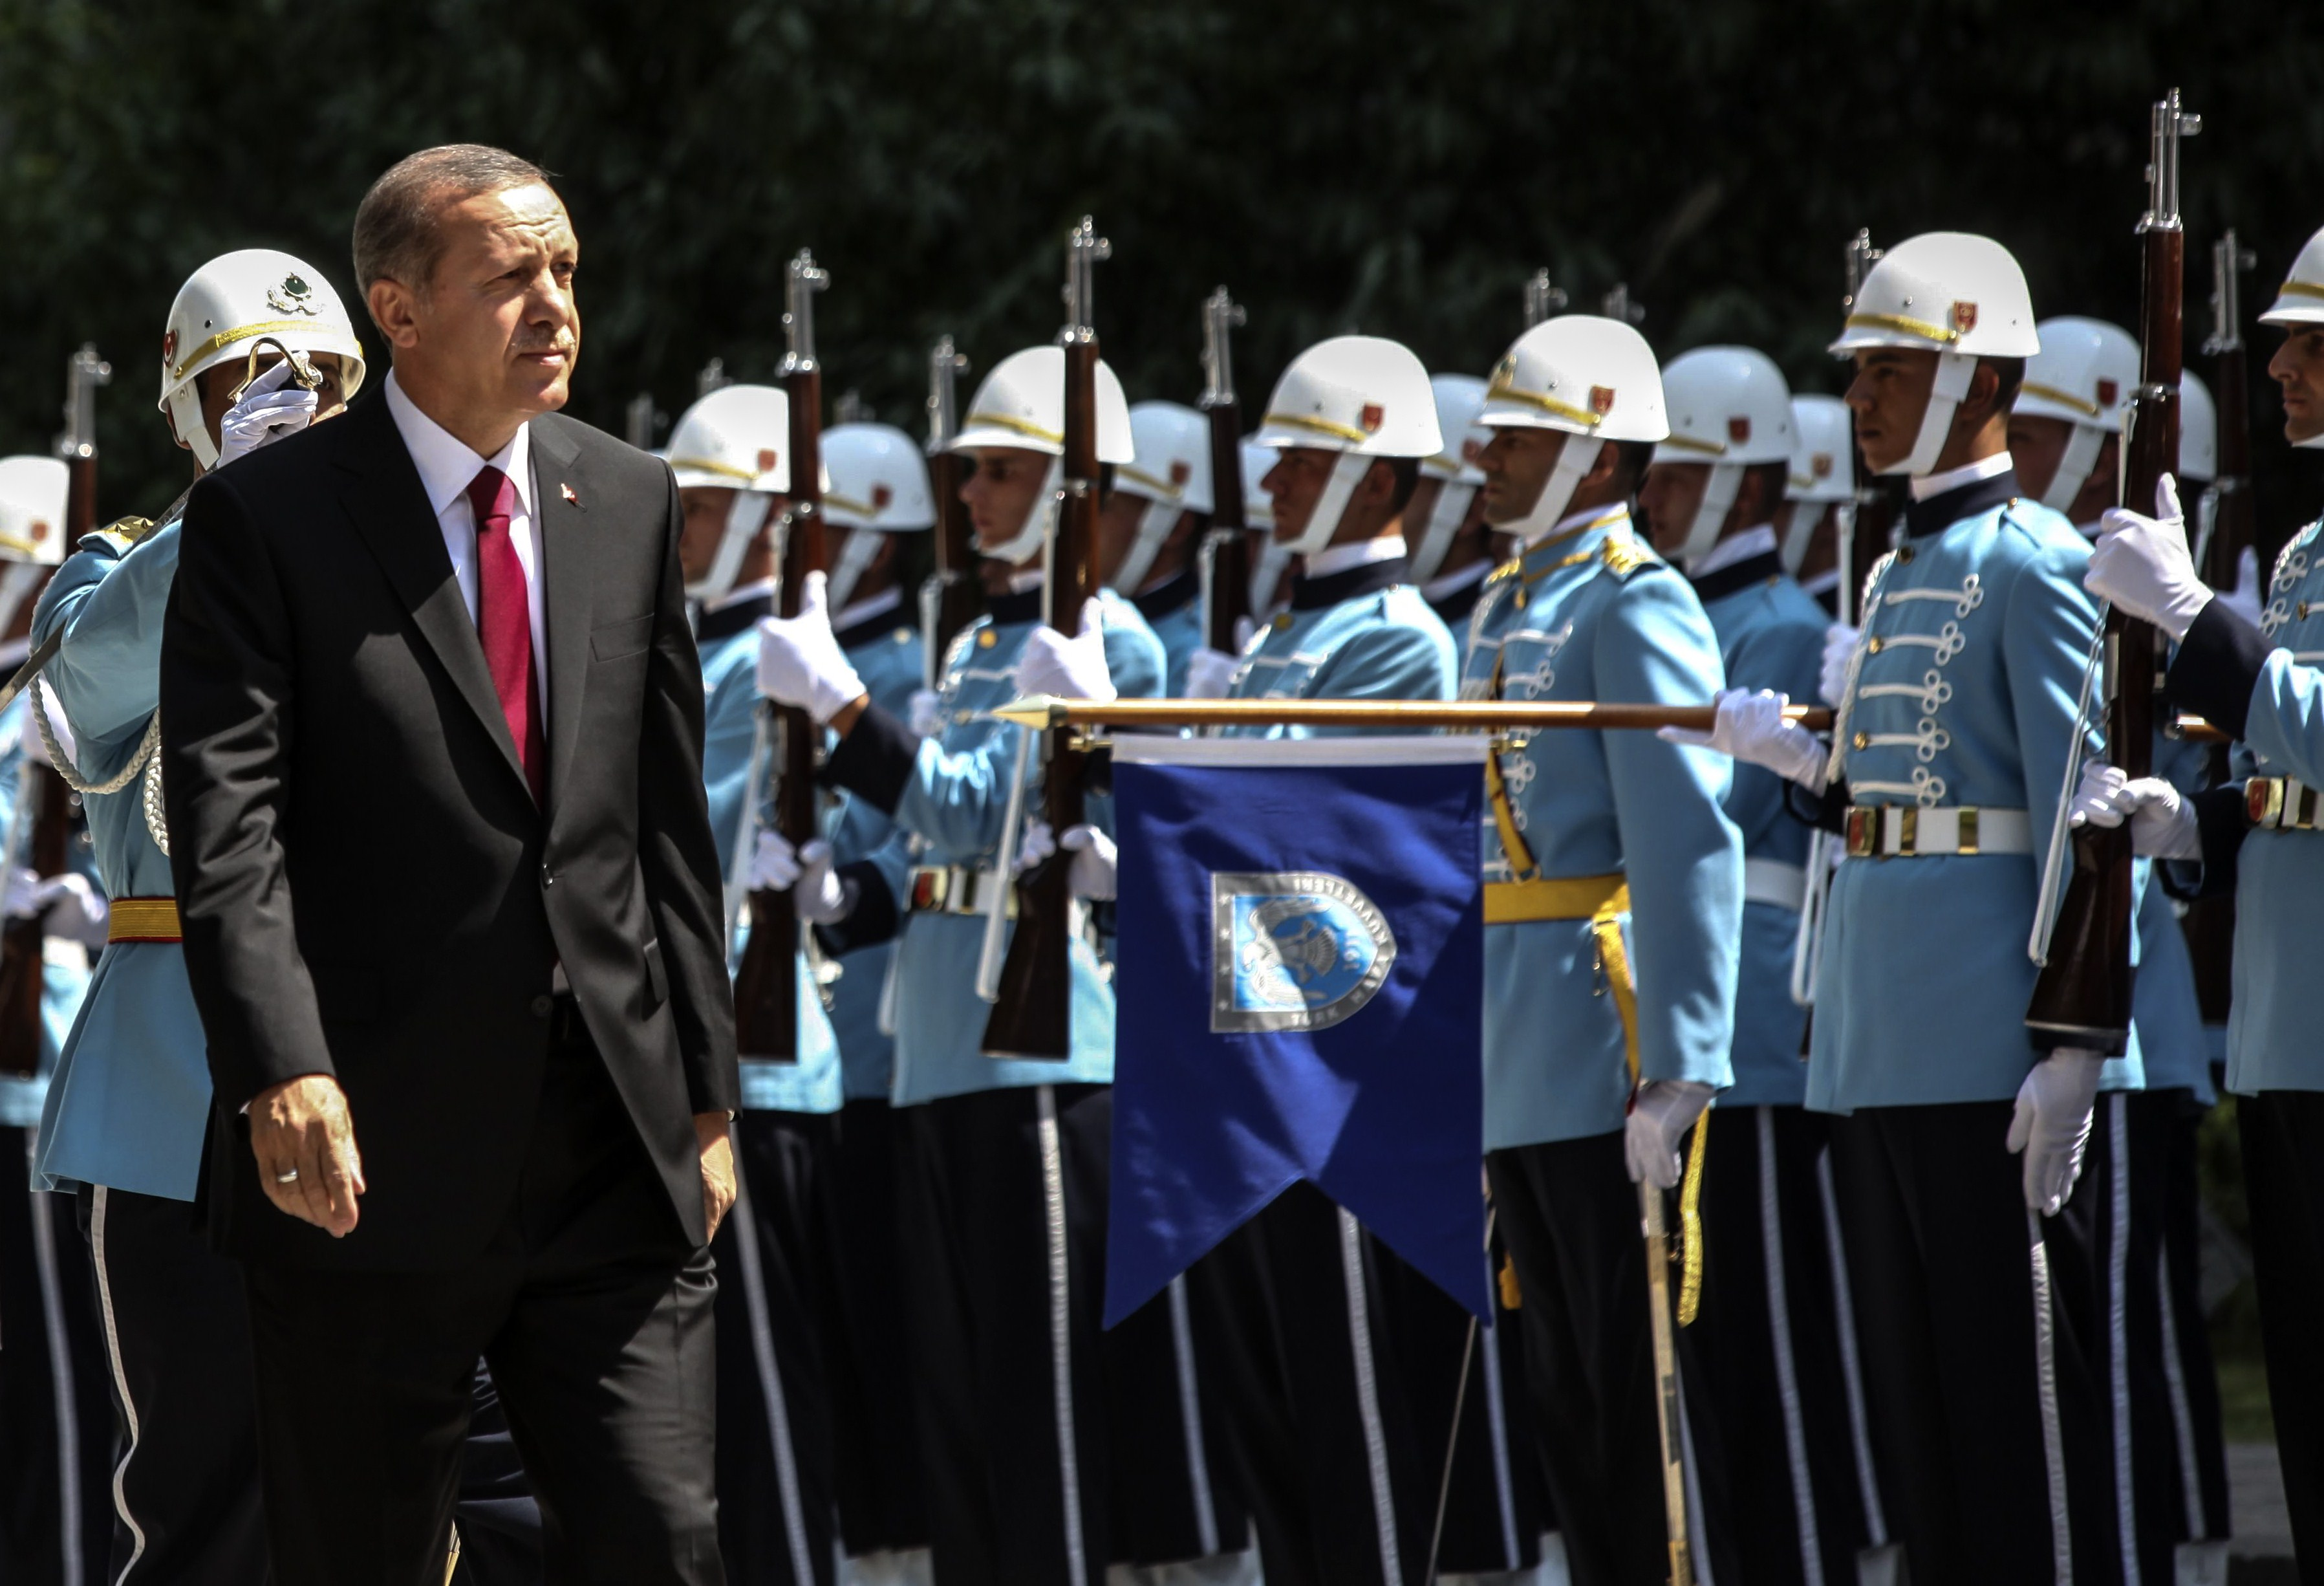 Turkey's new President Tayyip Erdogan (front) attends a swearing in ceremony in front the parliament building on August 28, 2014, in Ankara. Erdogan was sworn in as Turkey's 12th president at a ceremony in parliament on Thursday, cementing his position as the country's most powerful modern leader, in what his opponents fear will herald an increasingly authoritarian rule.